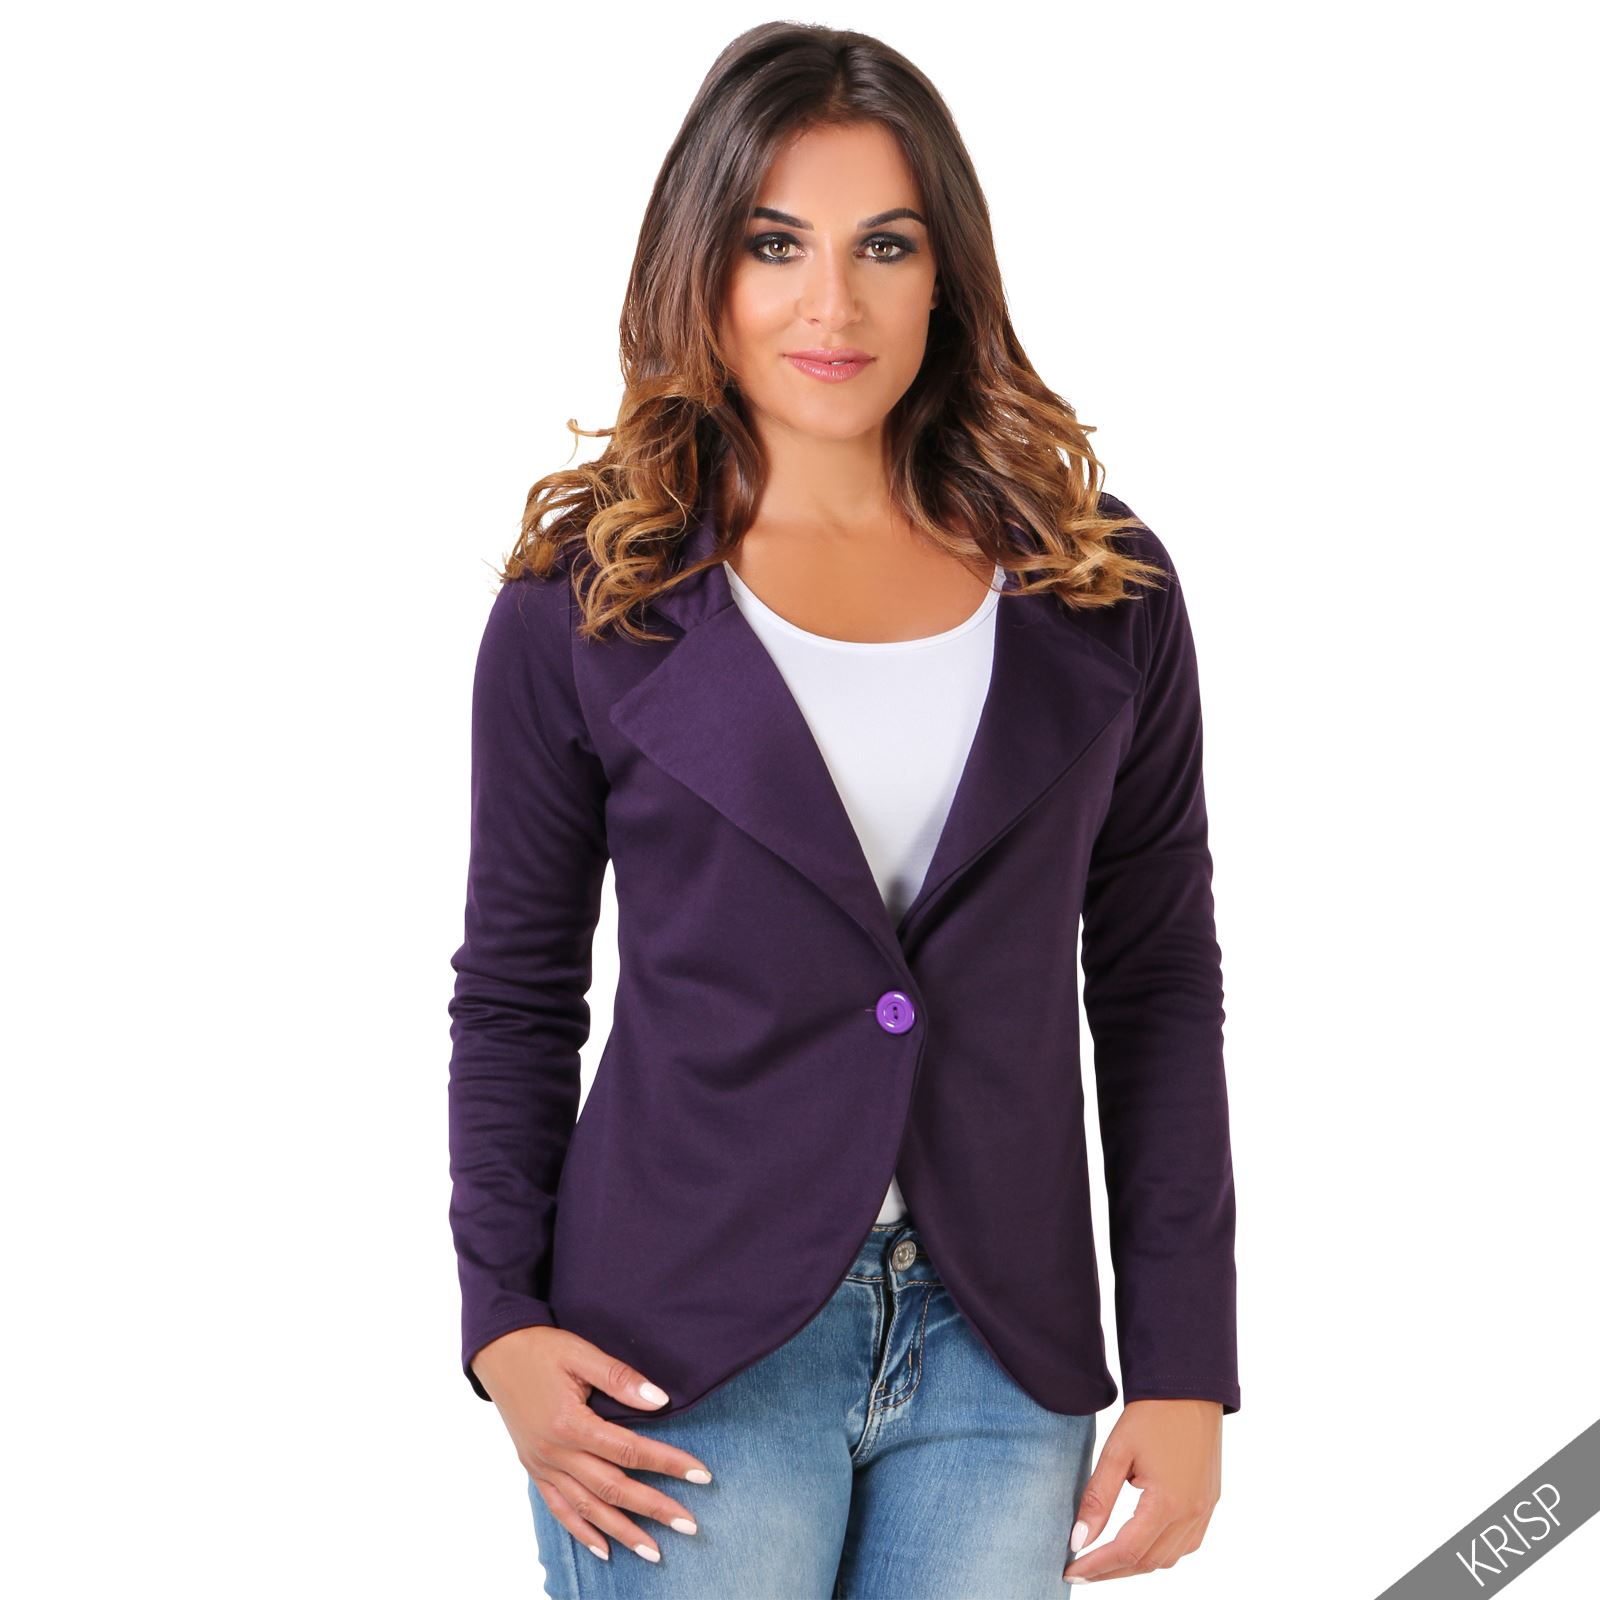 Harley-Davidson® Women's Casual and Mid-Layer Jackets - Fashionable and Definitely Feminine. When you're out the door for the office, to run errands, or for a night on the town, you can keep it casual and still boast your Harley® pride with our collection of casual jackets and coats.